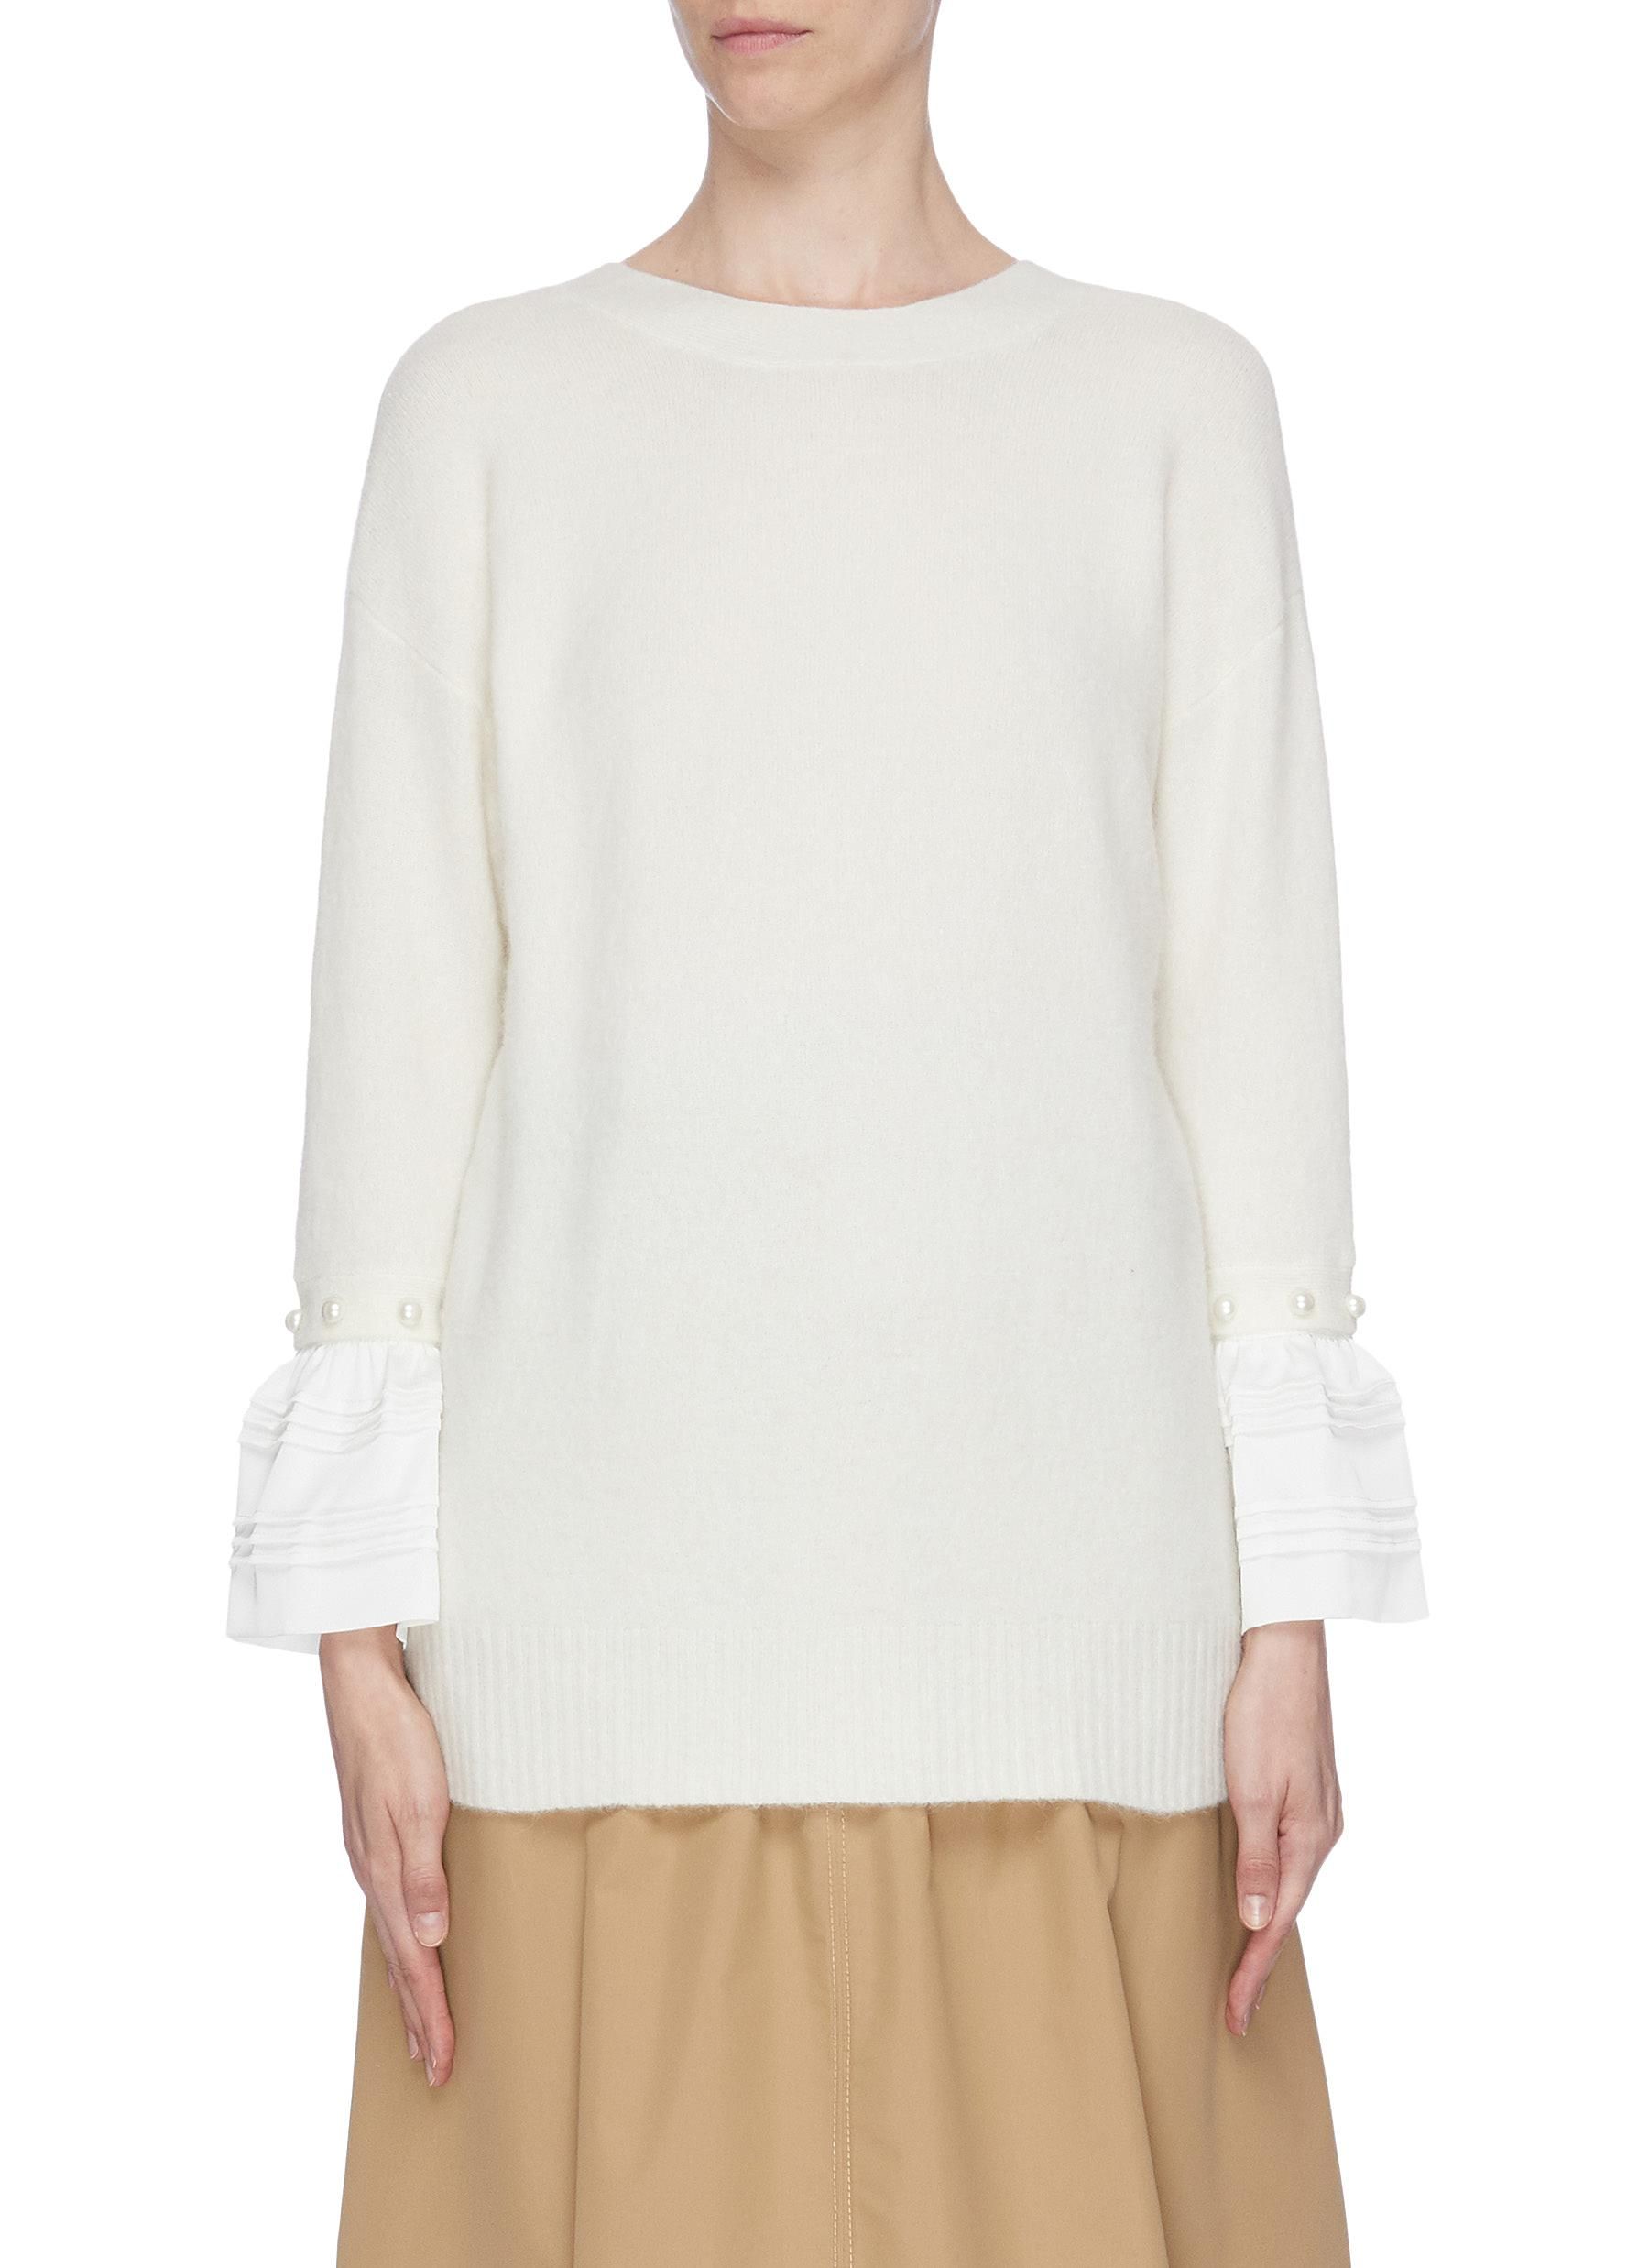 Faux pearl embellished ruffle cuff sweater by 3.1 Phillip Lim